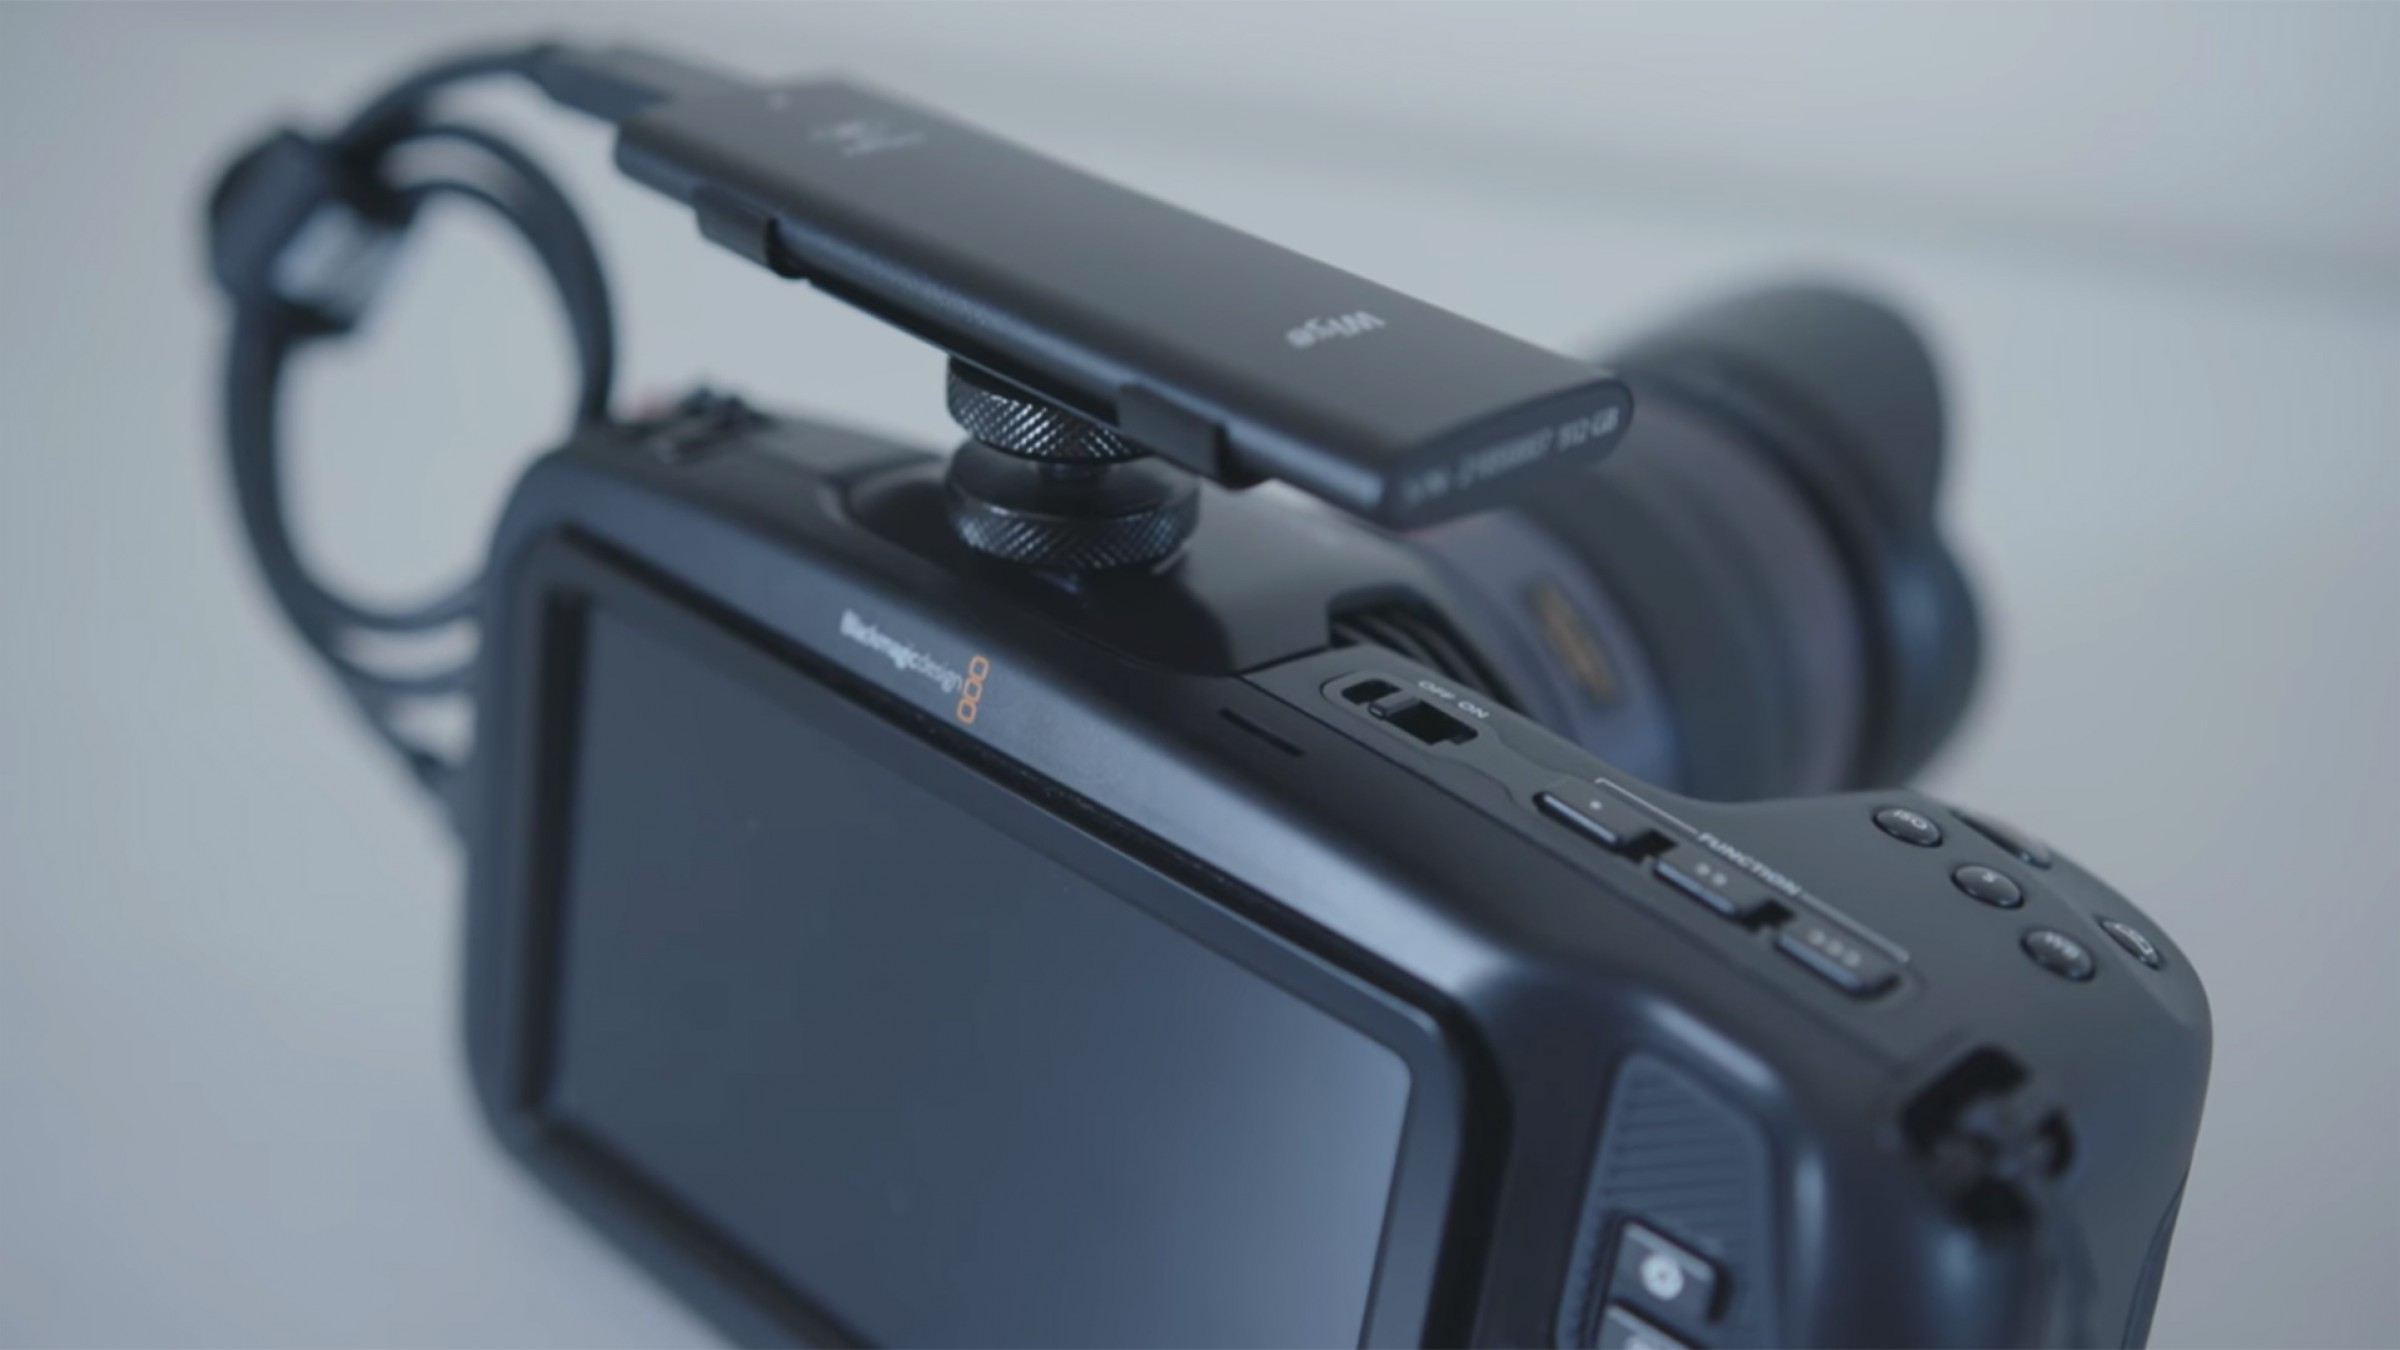 Is This The Best Ssd For The Blackmagic Pocket Cinema 4k Camera